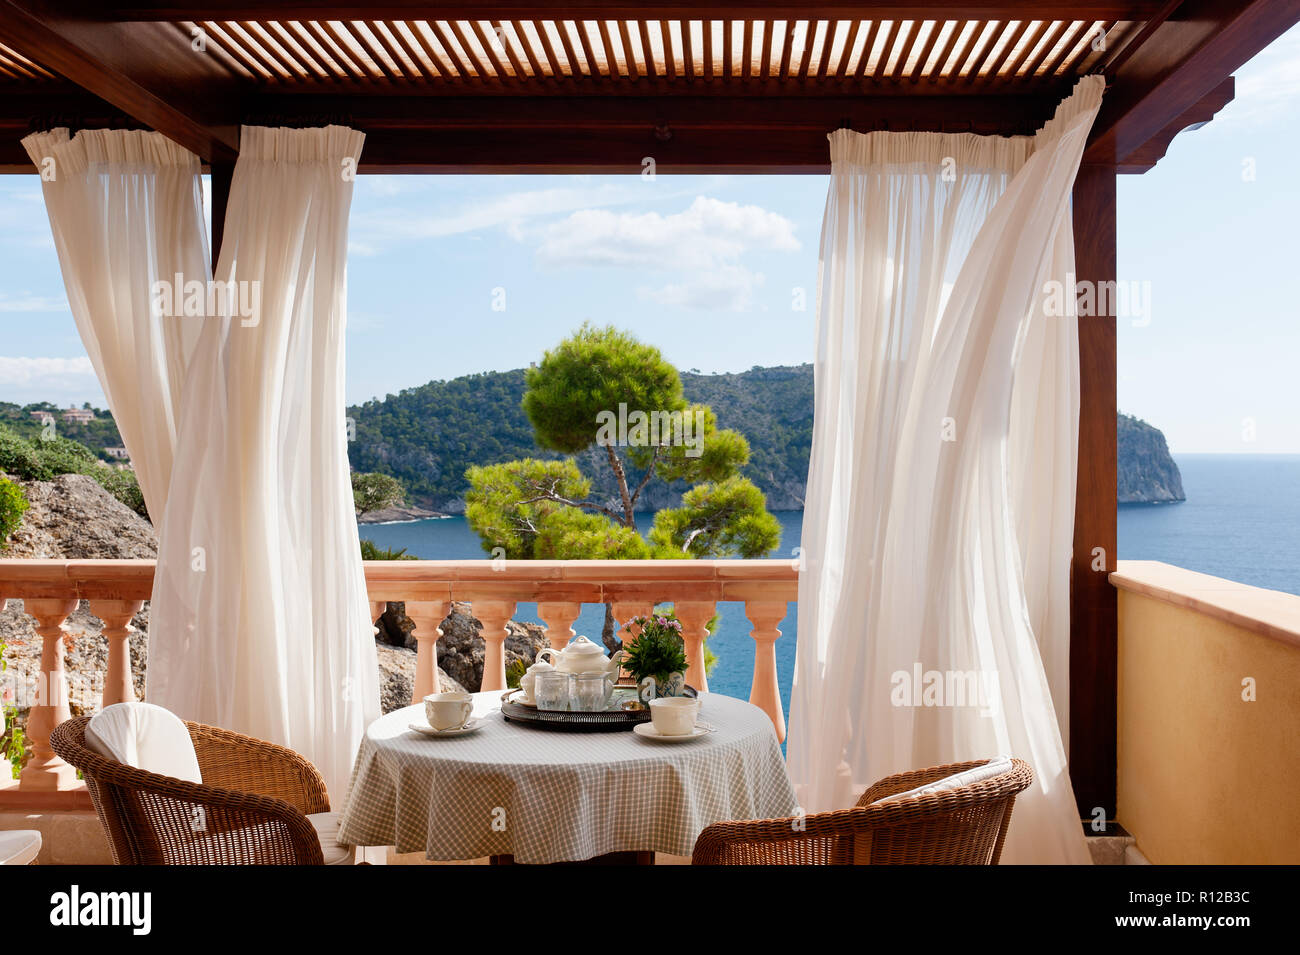 Table and chairs on balcony with curtains - Stock Image